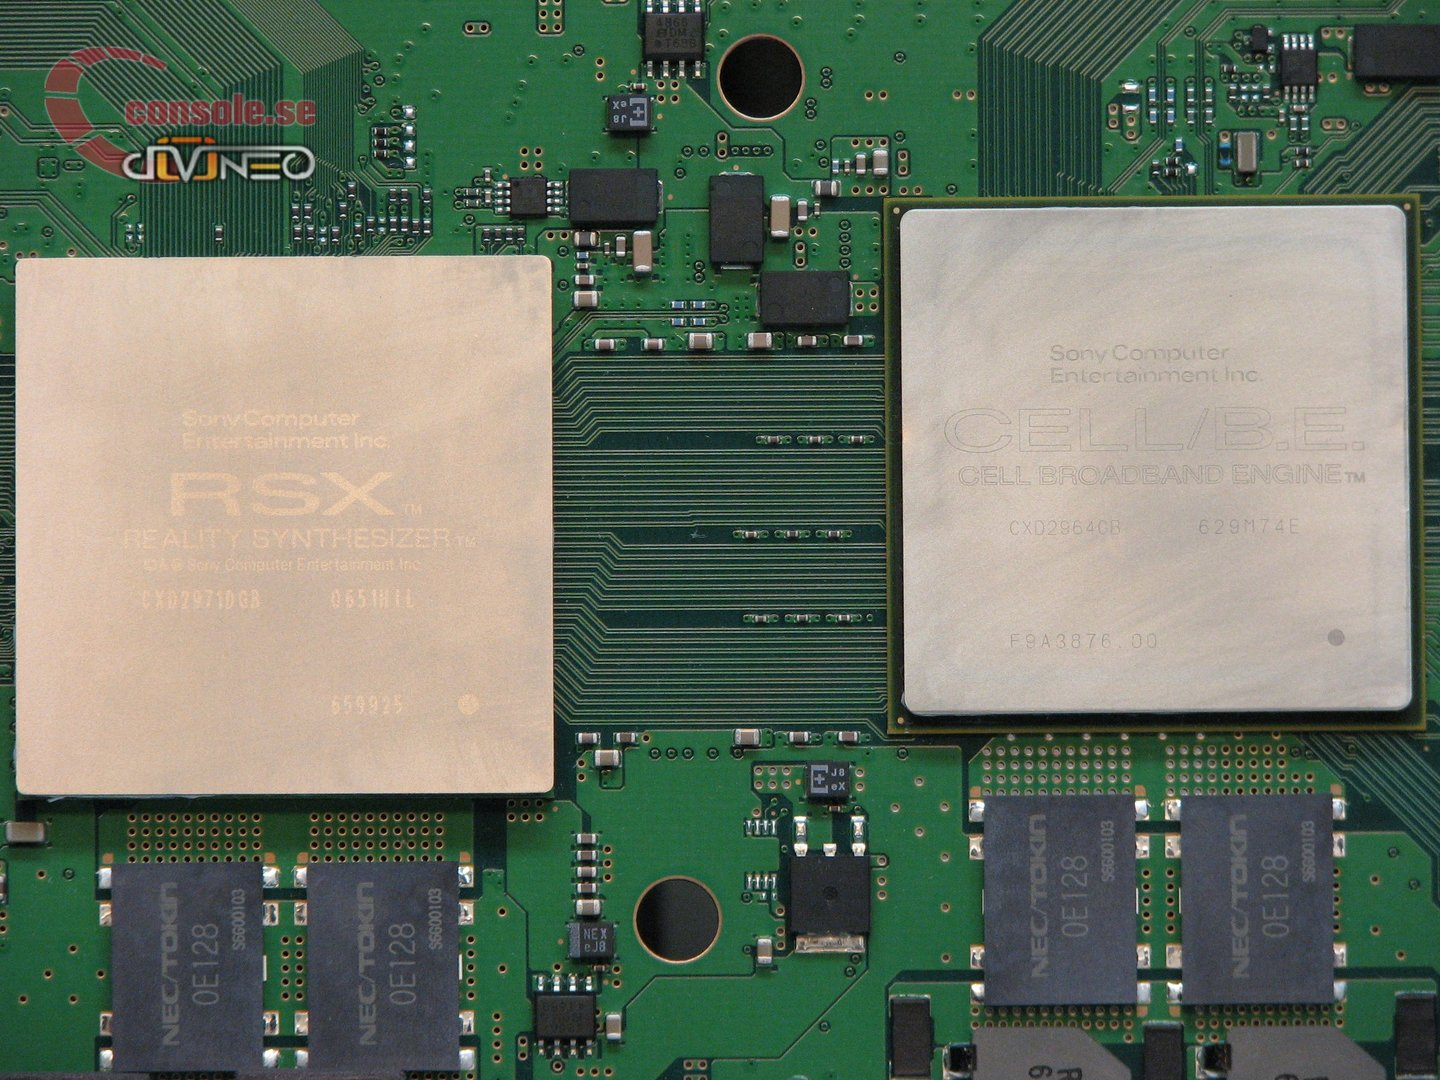 PlayStation 3: Blick ins Innere: CELL-CPU und RSX-GPU | Quelle: console.se